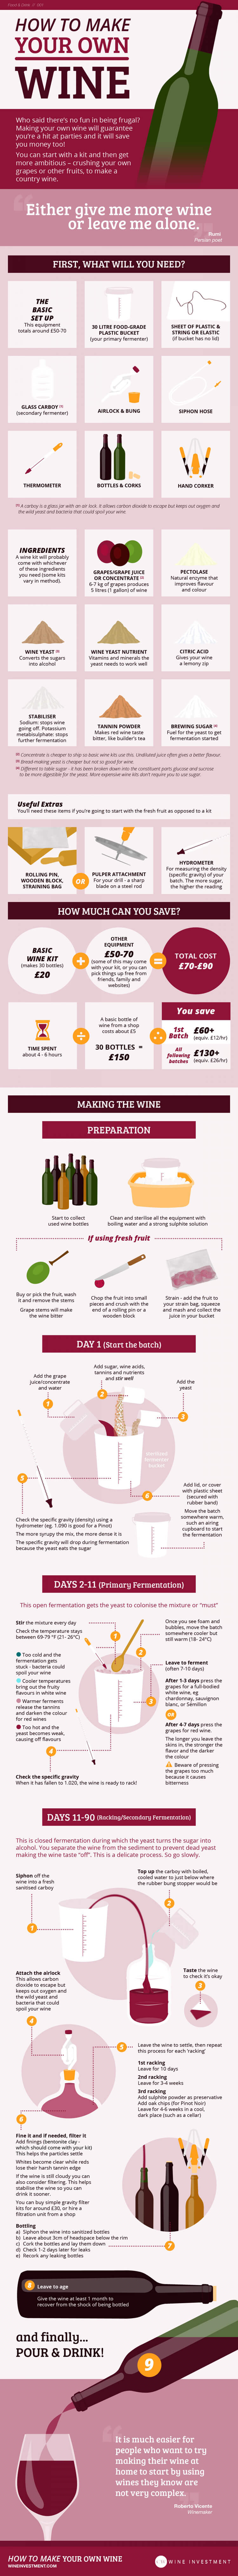 how-to-make-your-own-wine-infographic